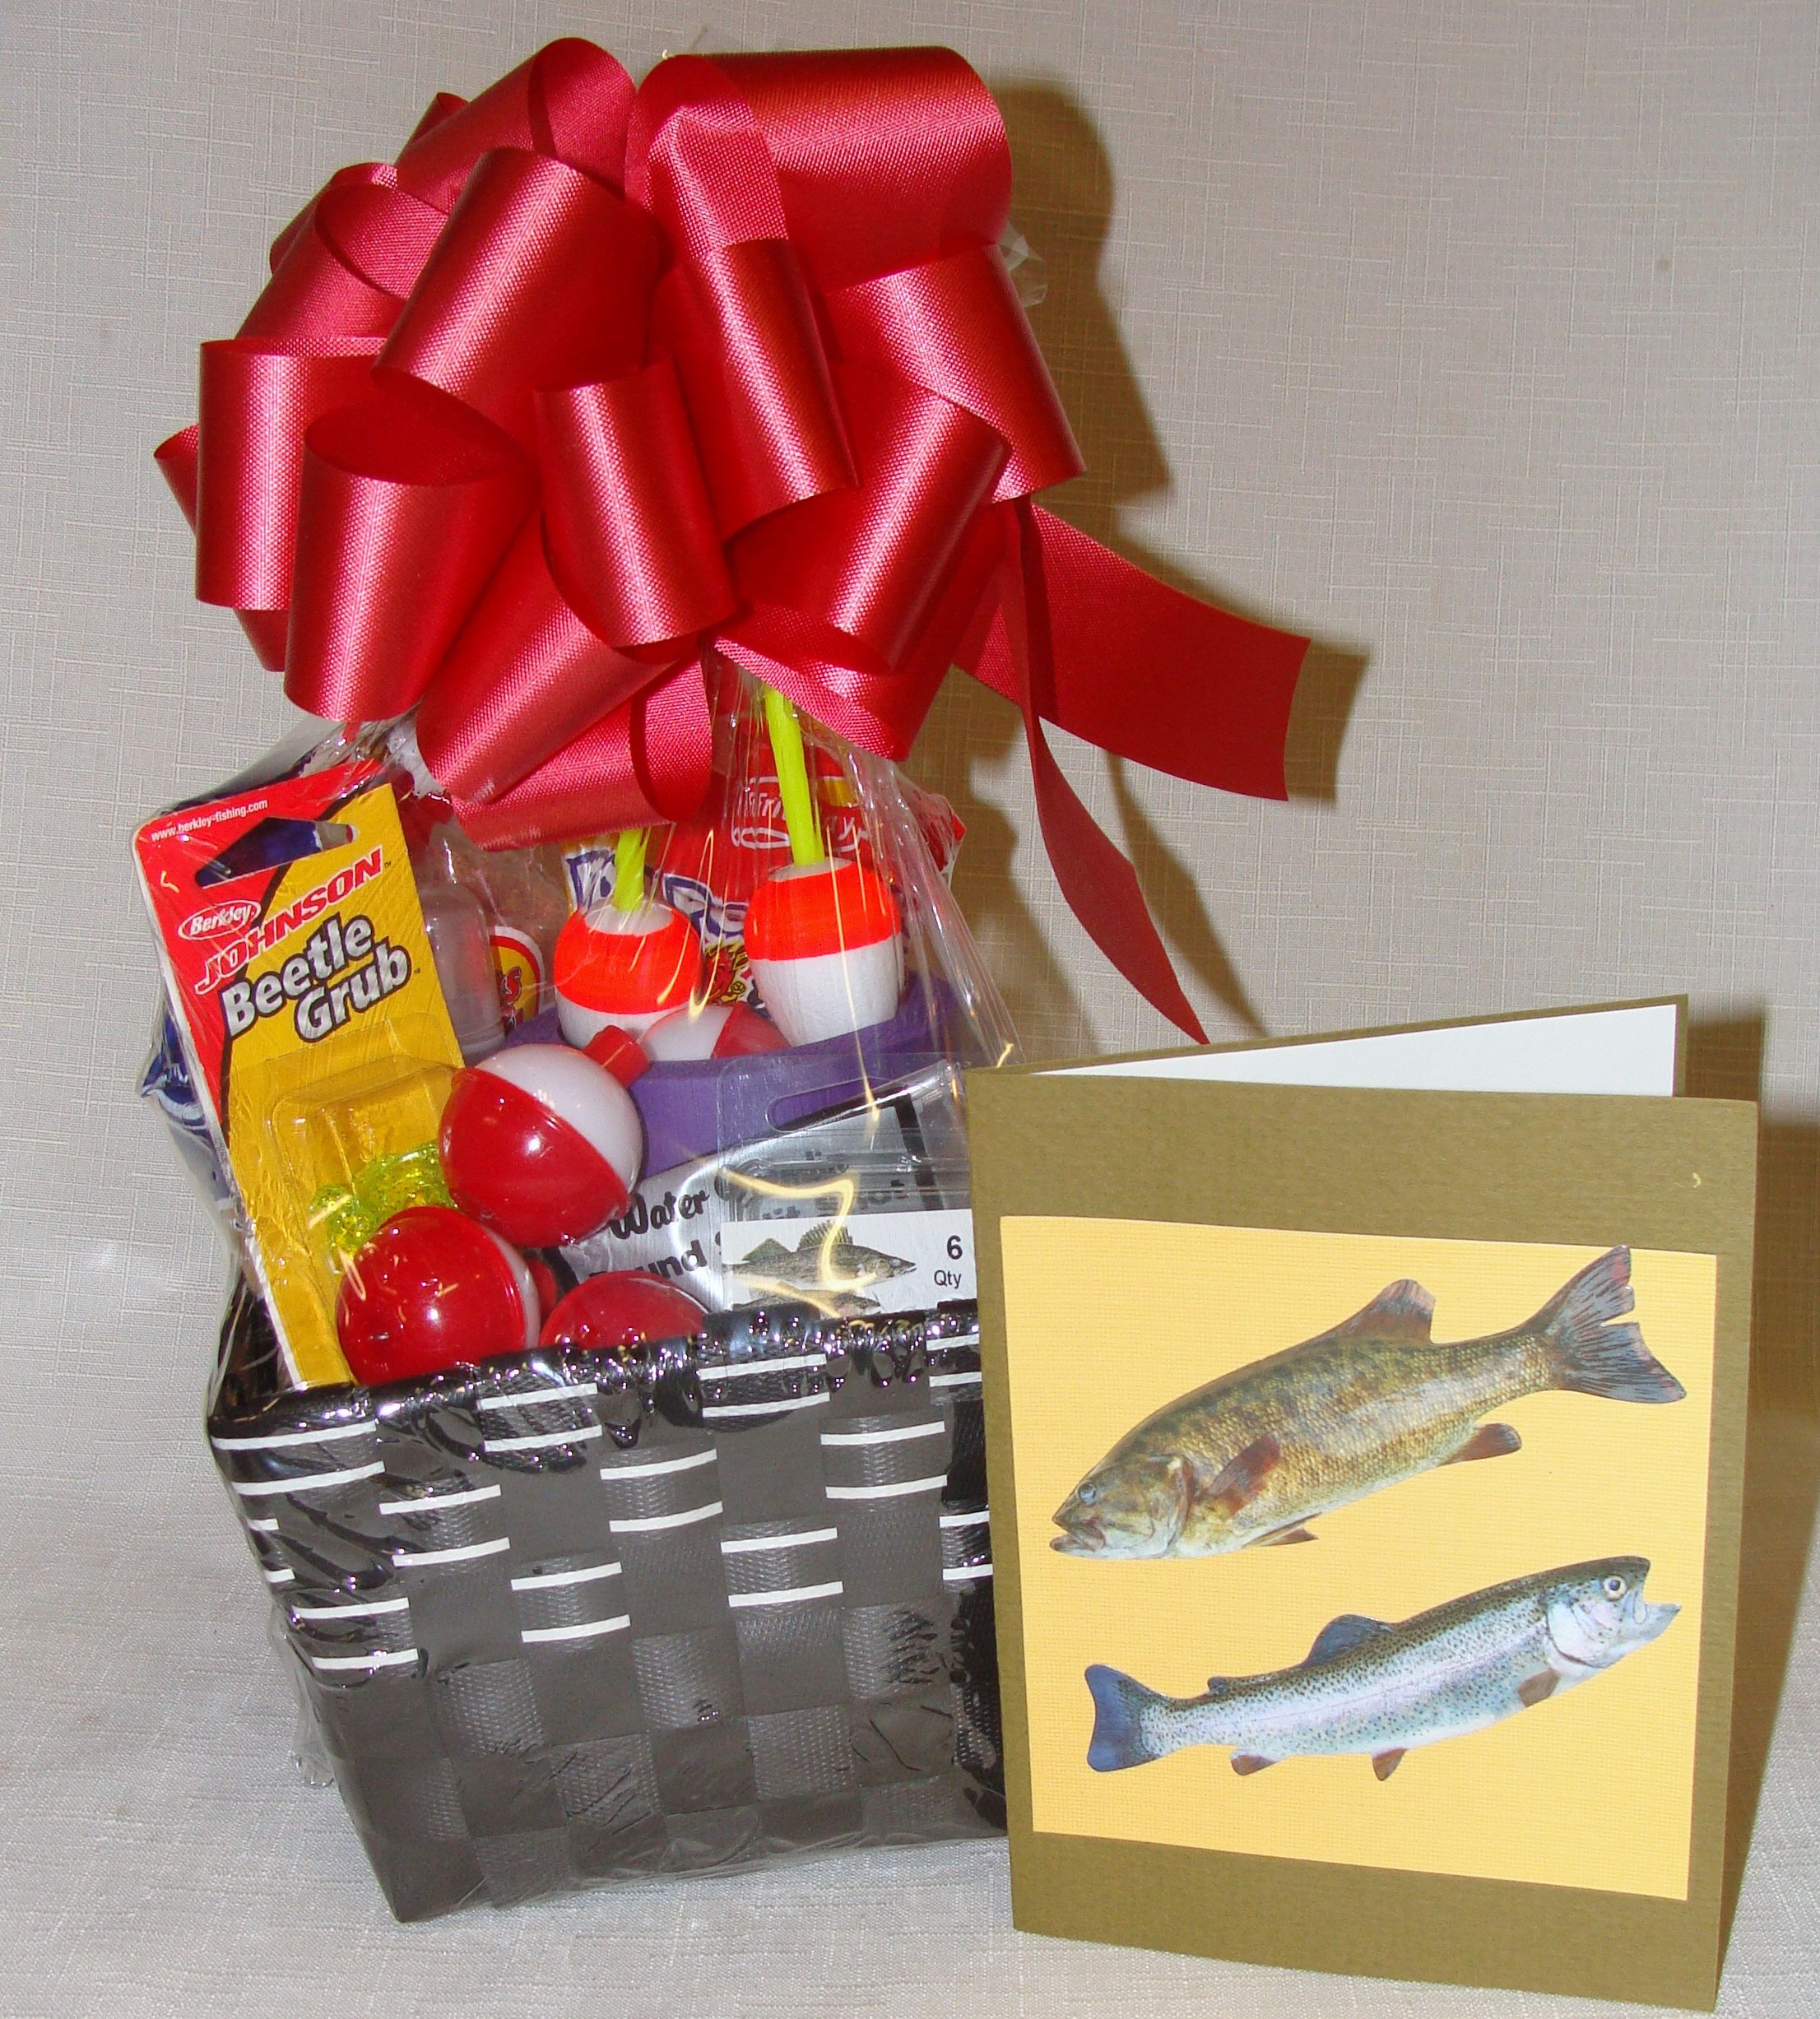 REEL THEM IN ! Nuts About Fishing Gift Basket